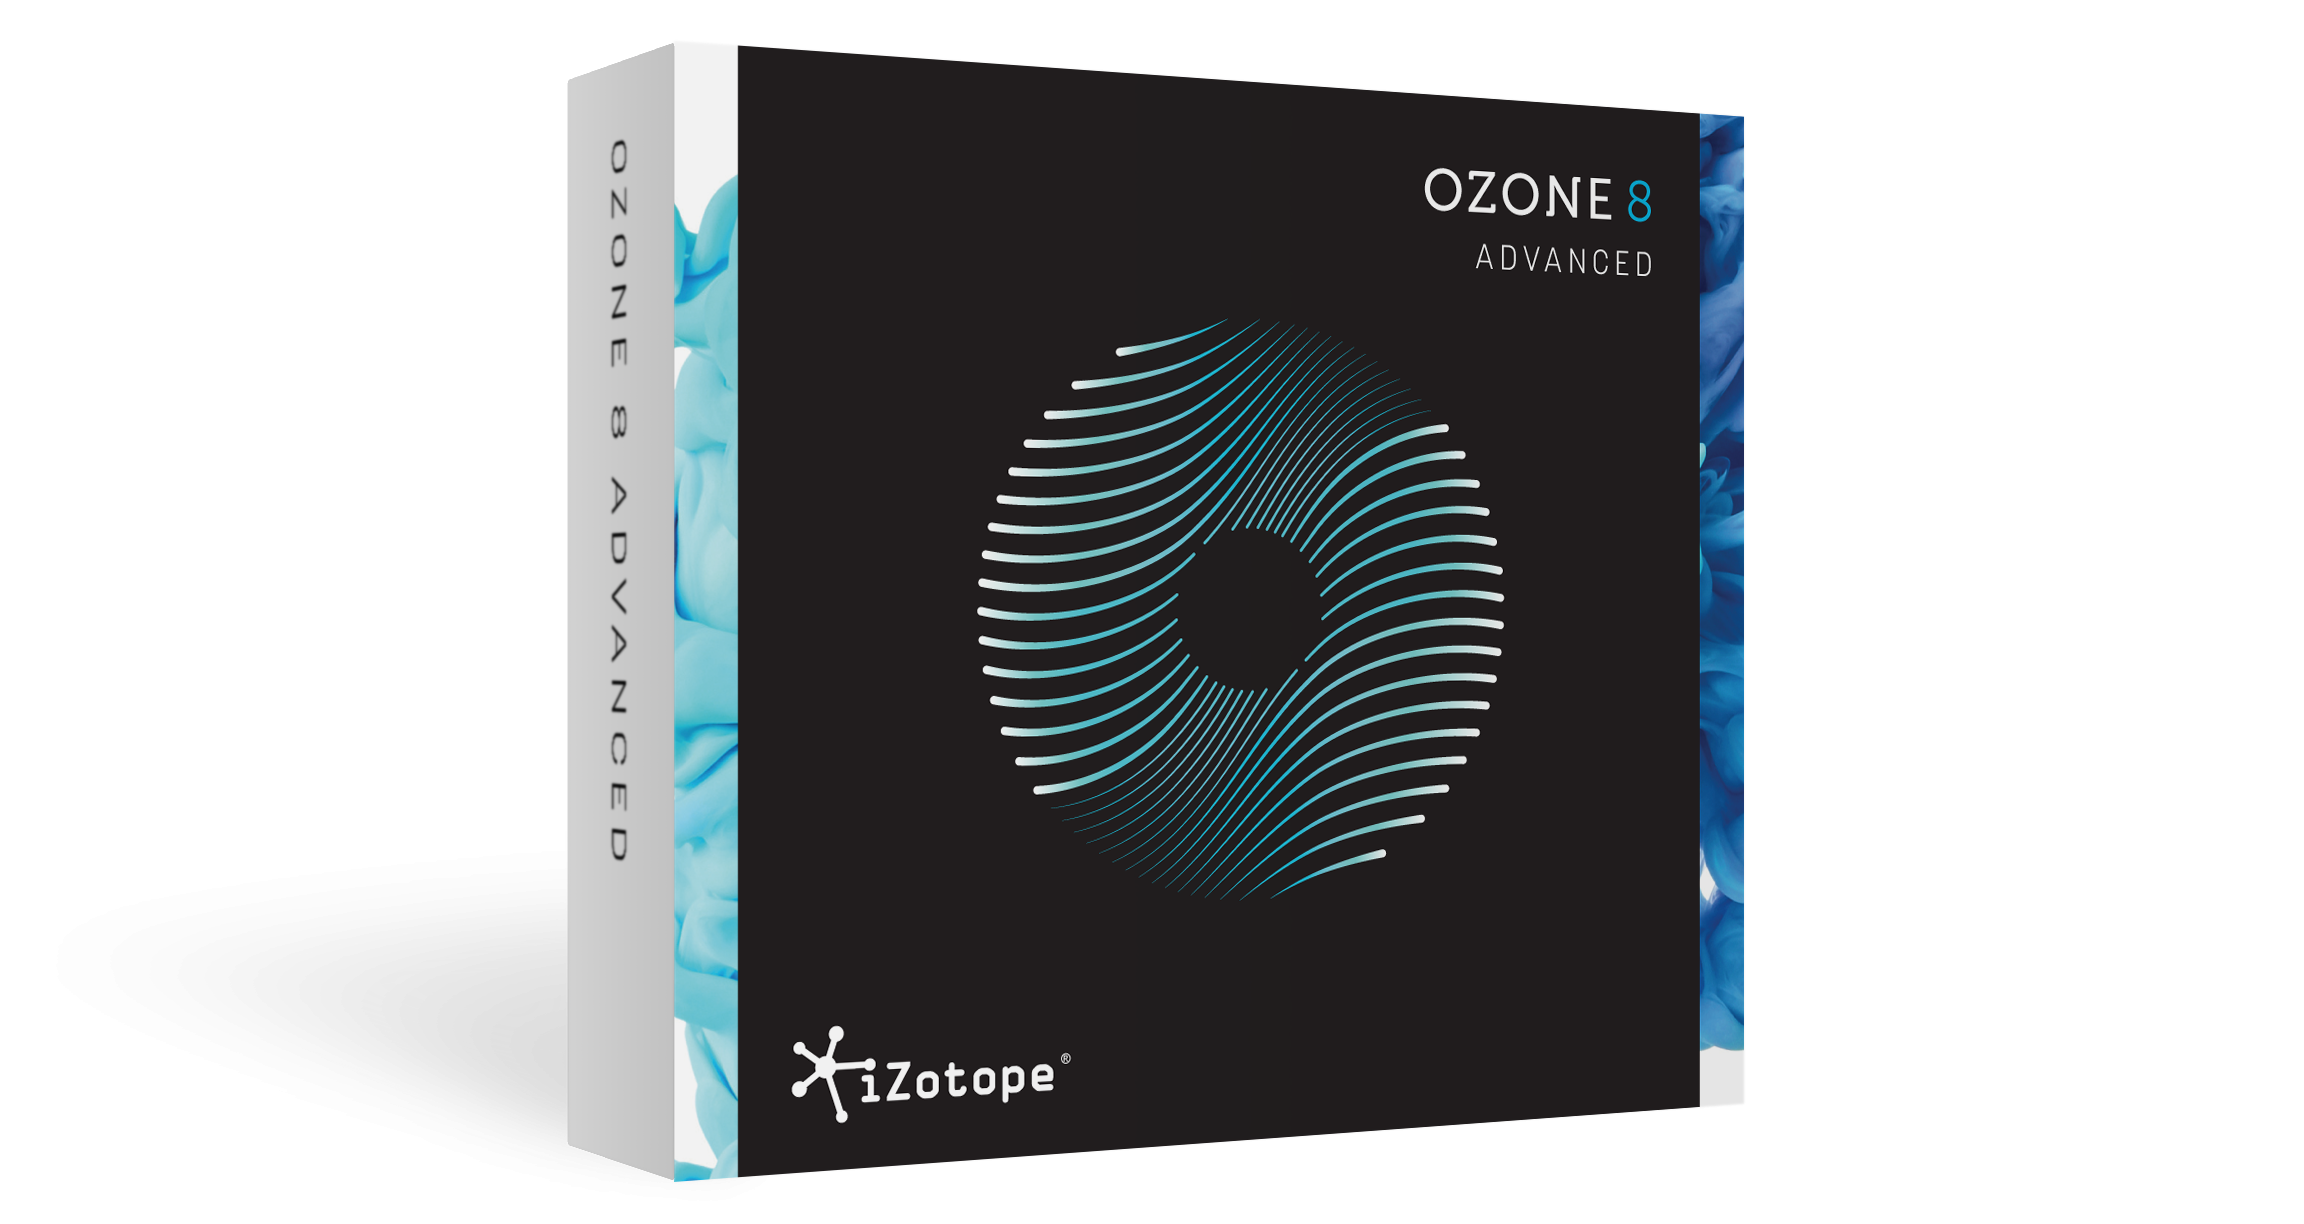 iZotope Ozone 9.10 Crack 2021 With Serial Key New Version For [Windows + Mac]